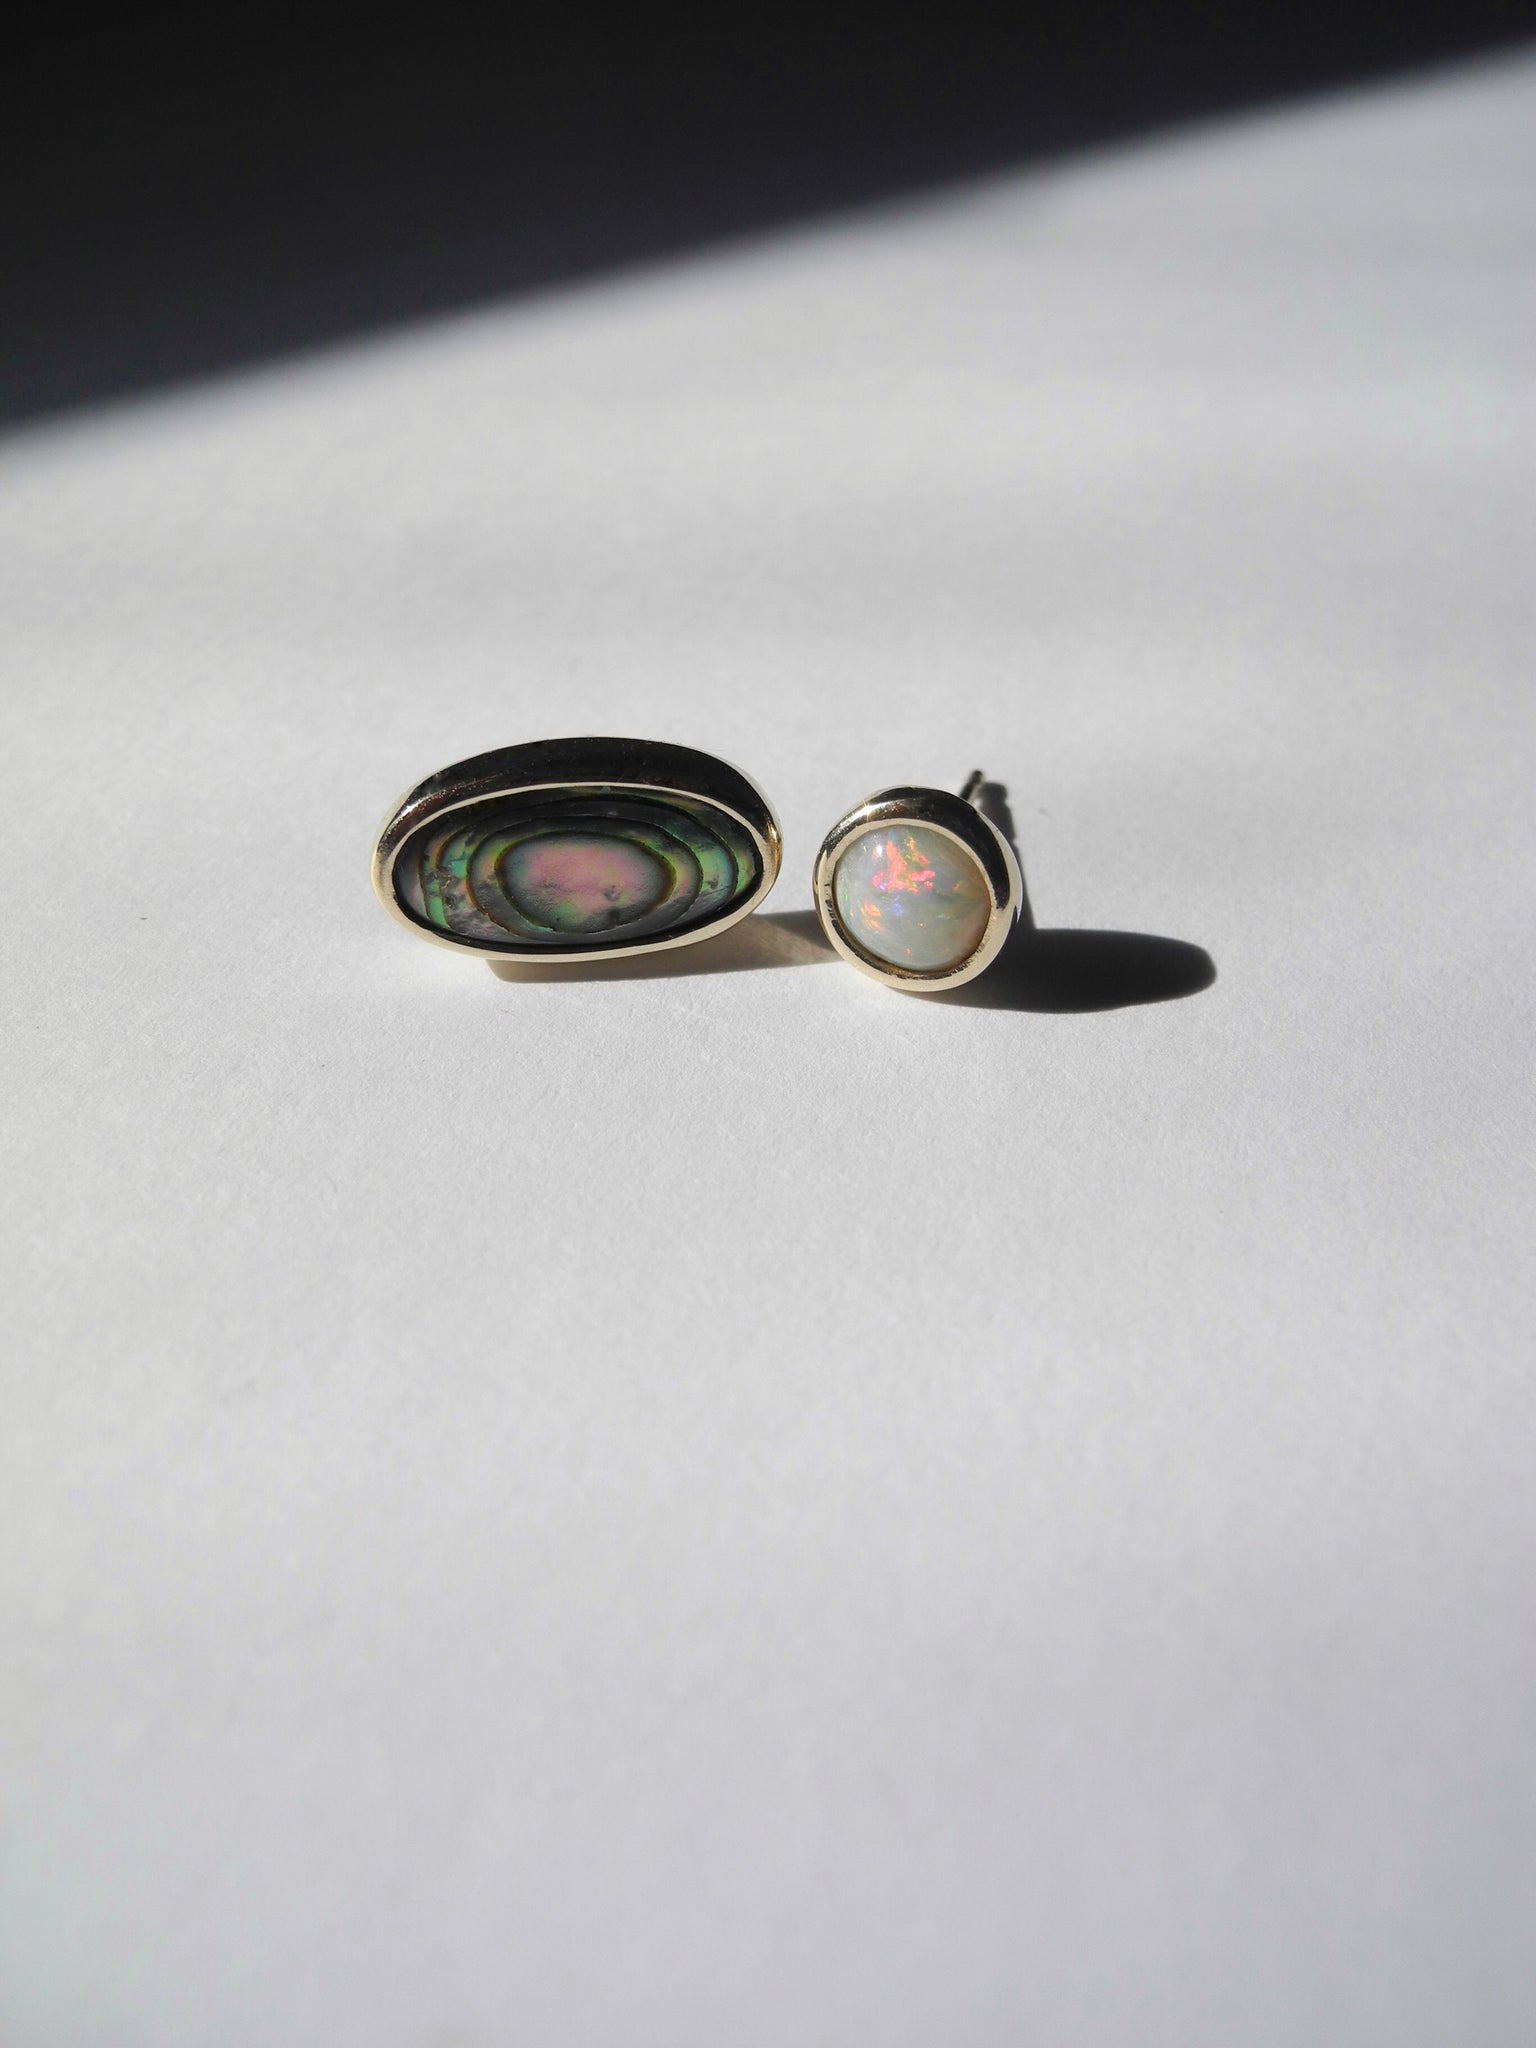 rainbow-essence studs in recycled 14k gold